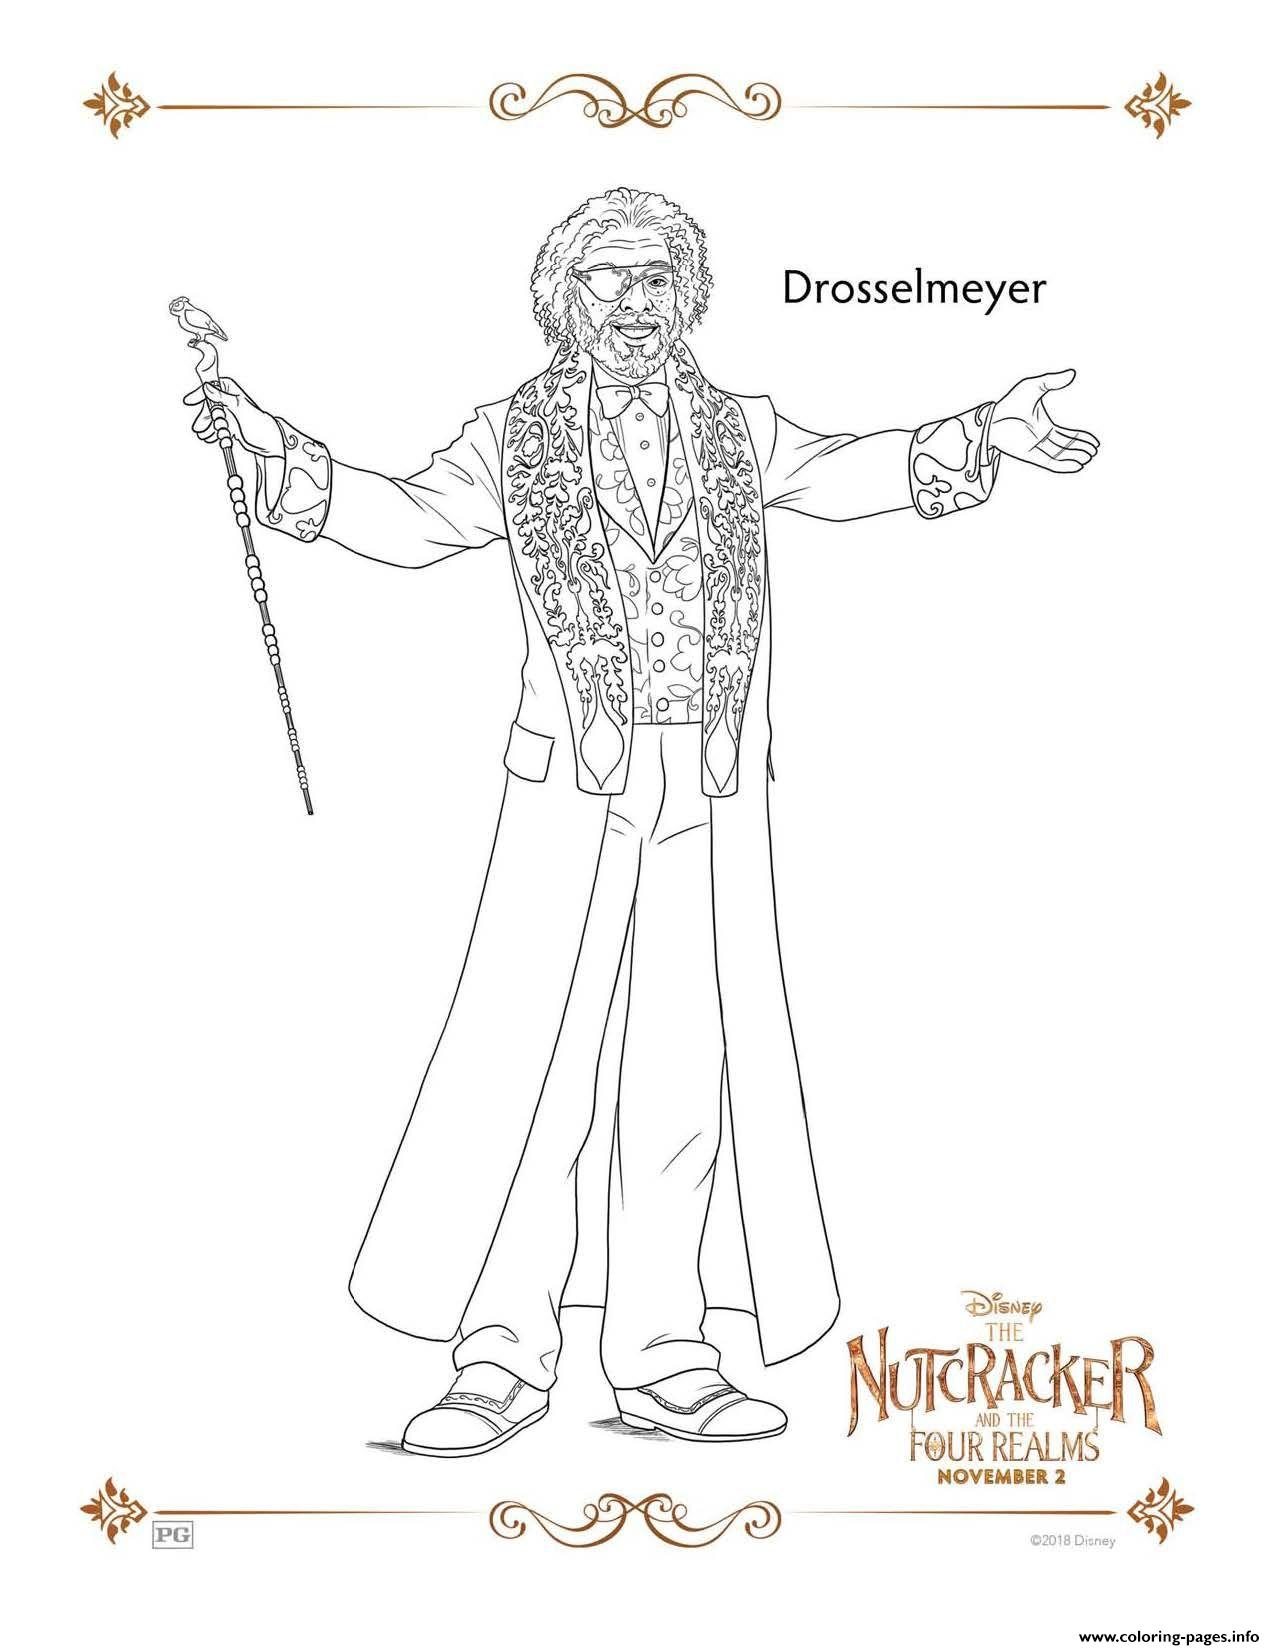 Drosselmeyer The Nutcracker coloring pages